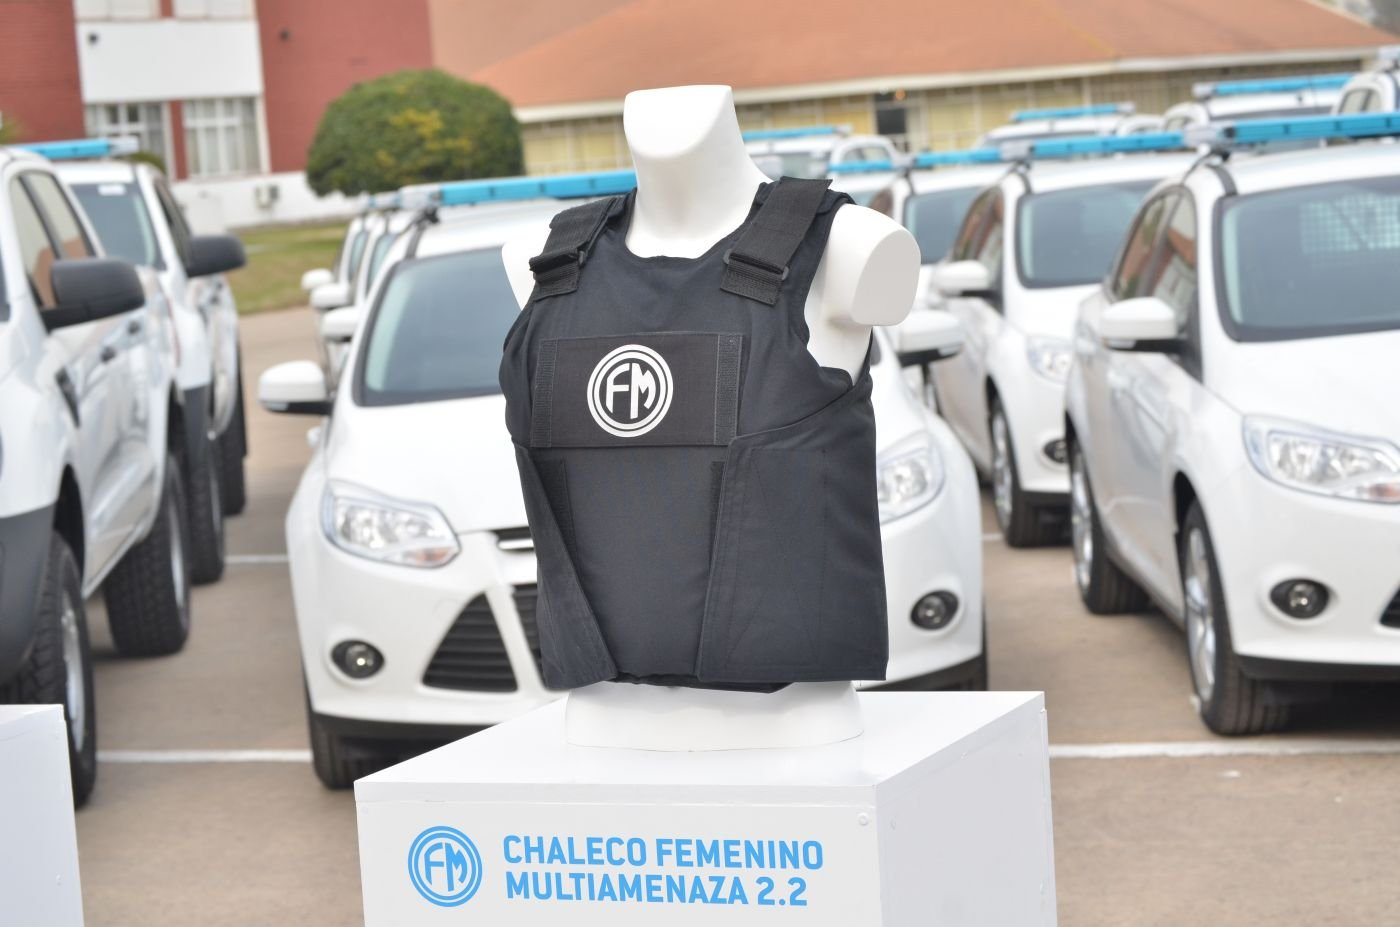 Argentina Produces First Bullet-Proof Vests for Women in the Security Forces